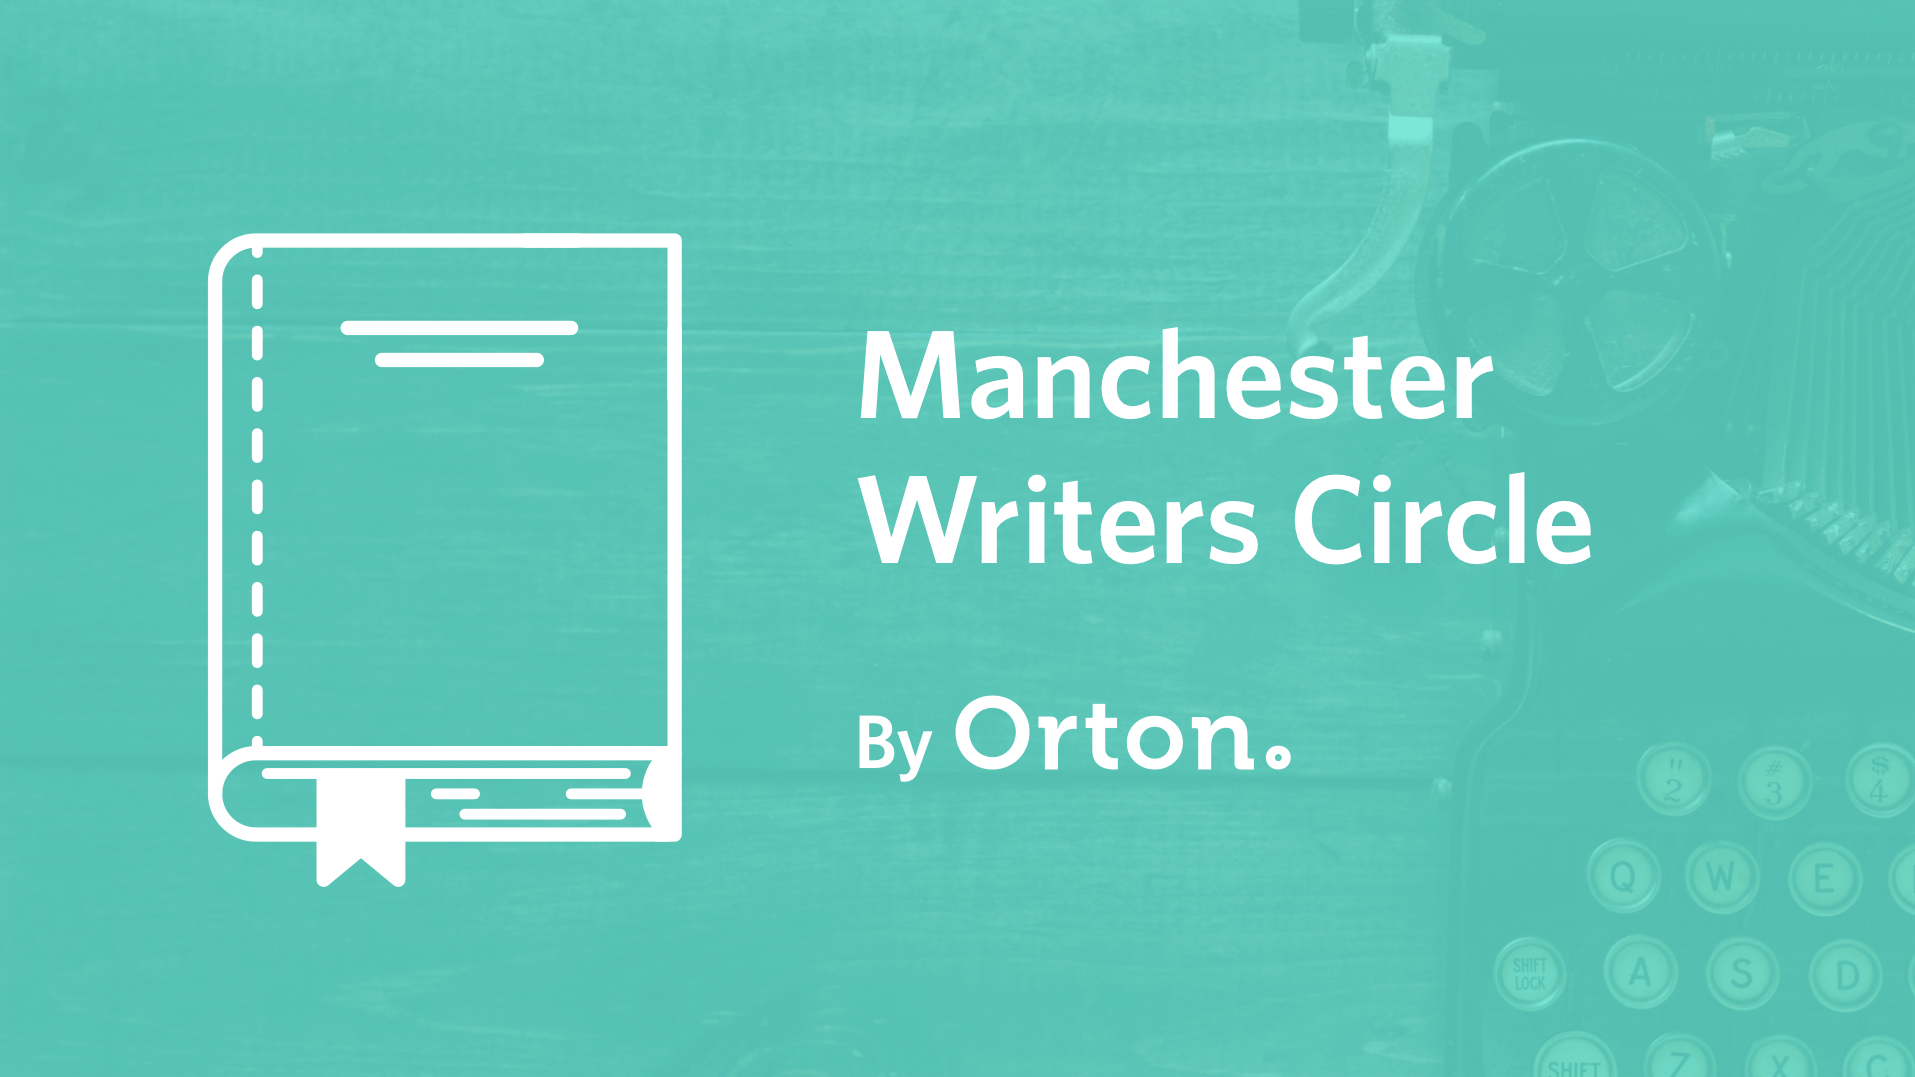 Orton's Manchester Writers Circle